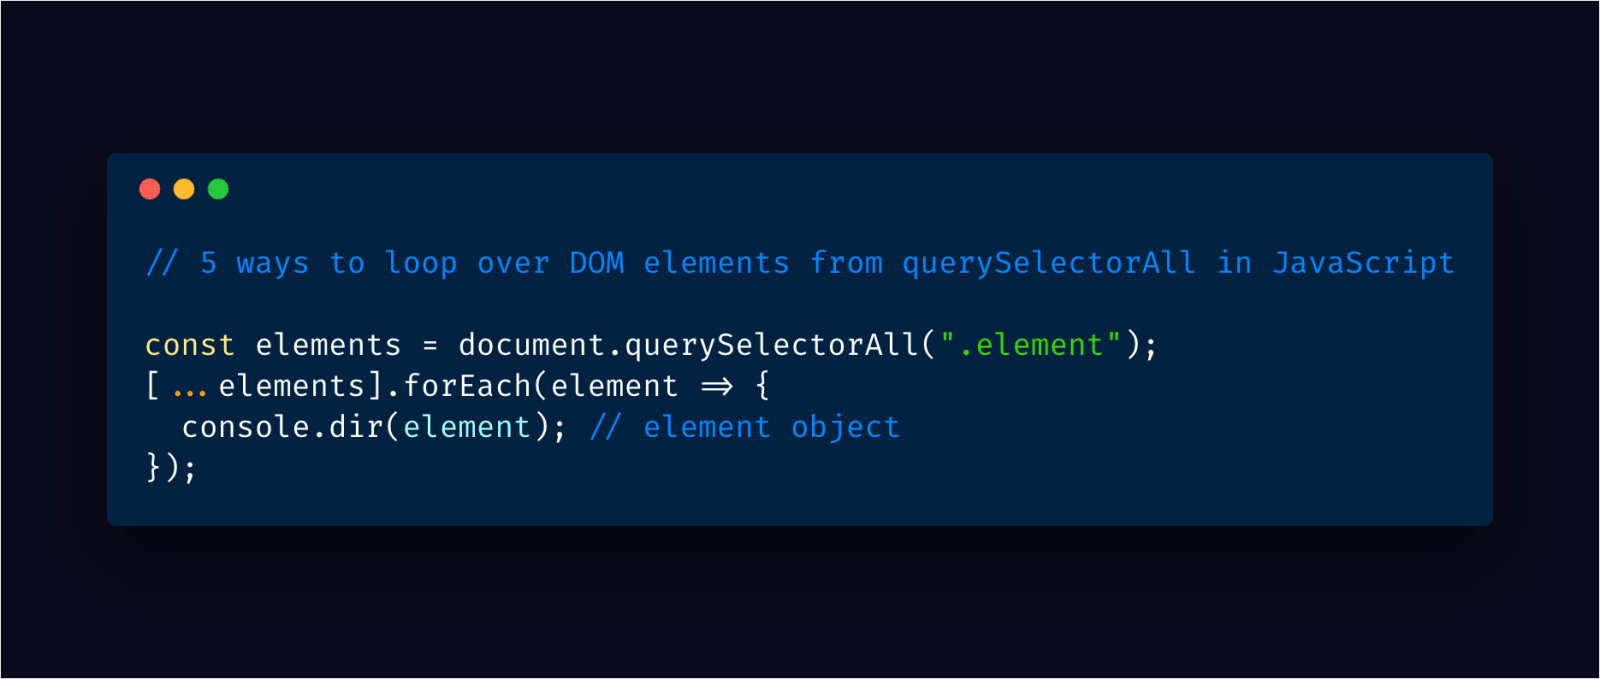 5 ways to loop over DOM elements from querySelectorAll in